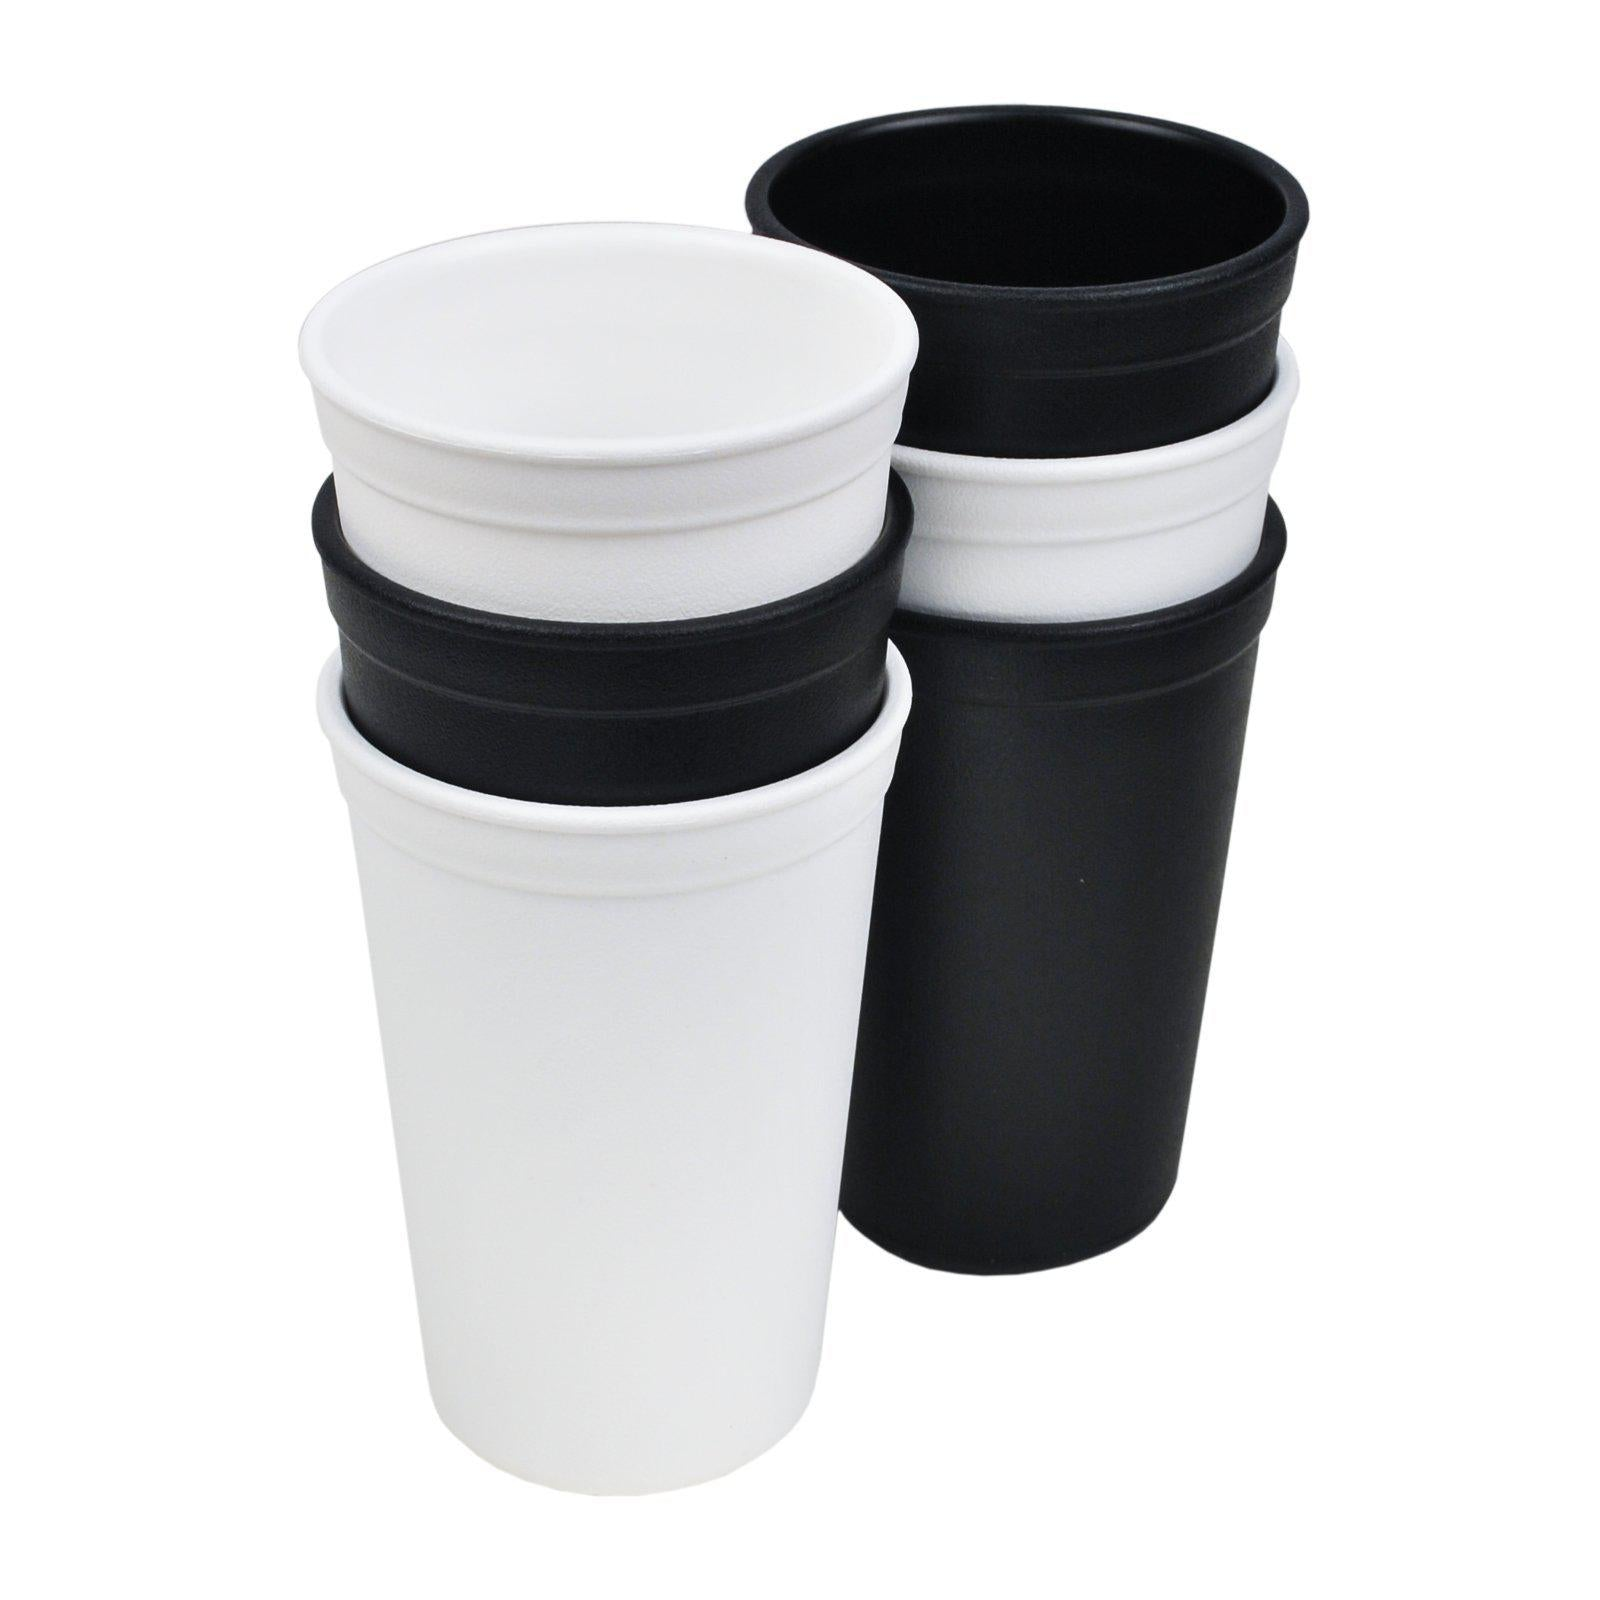 Replay 6 Piece Monochrome Set - Tumbler Drinking Cups-Dinnerware-BabyDonkie